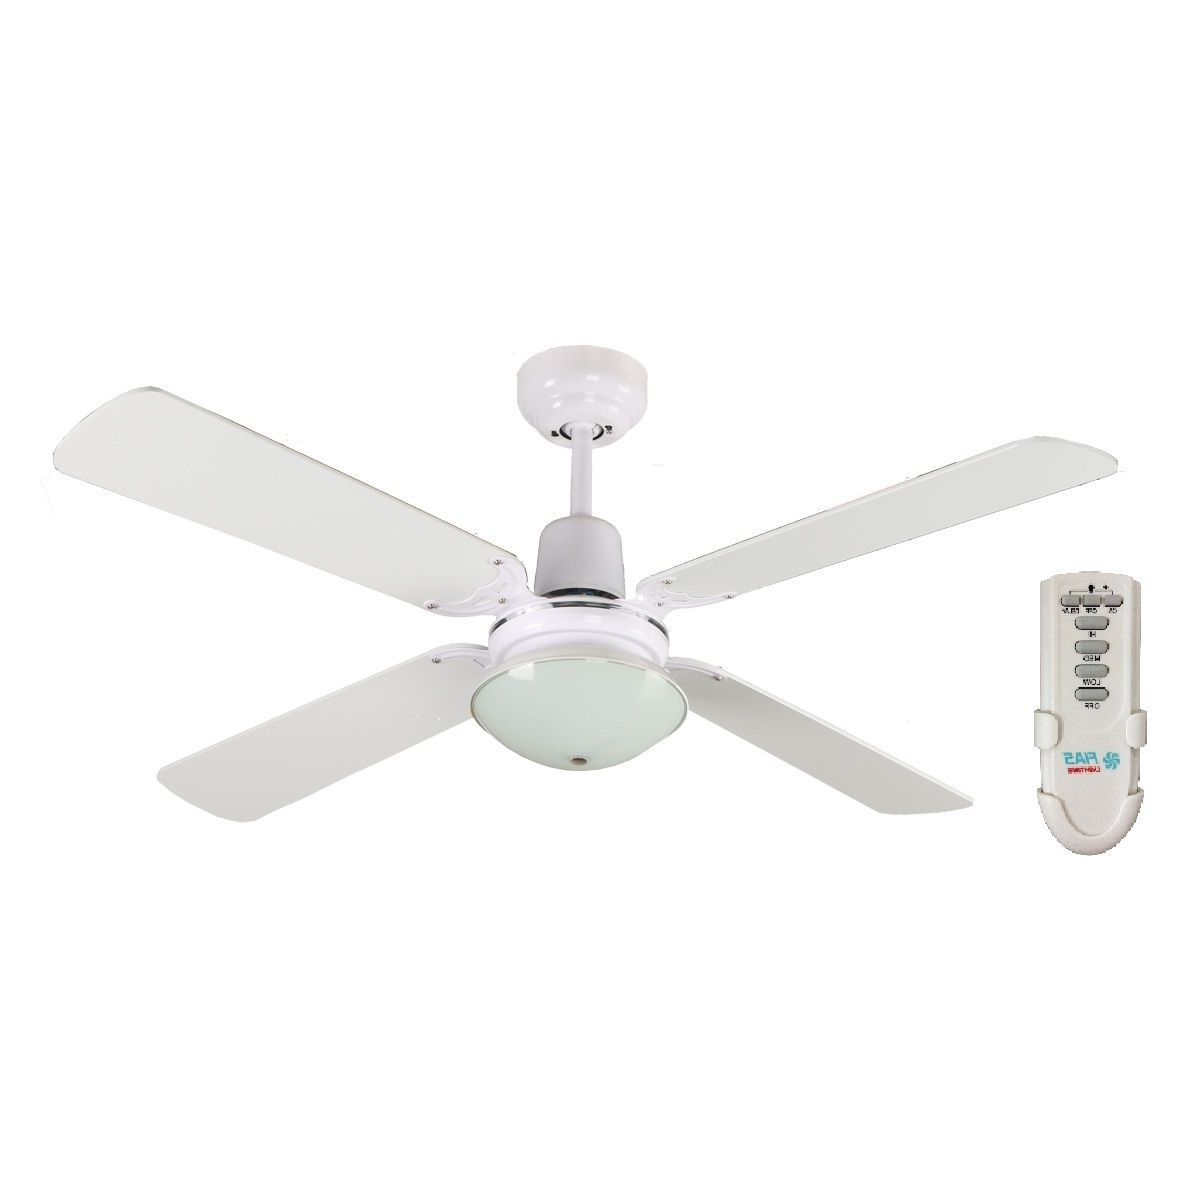 Outdoor Ceiling Fans At Bunnings For Popular Martec Ceiling Fans Bunnings (View 5 of 20)